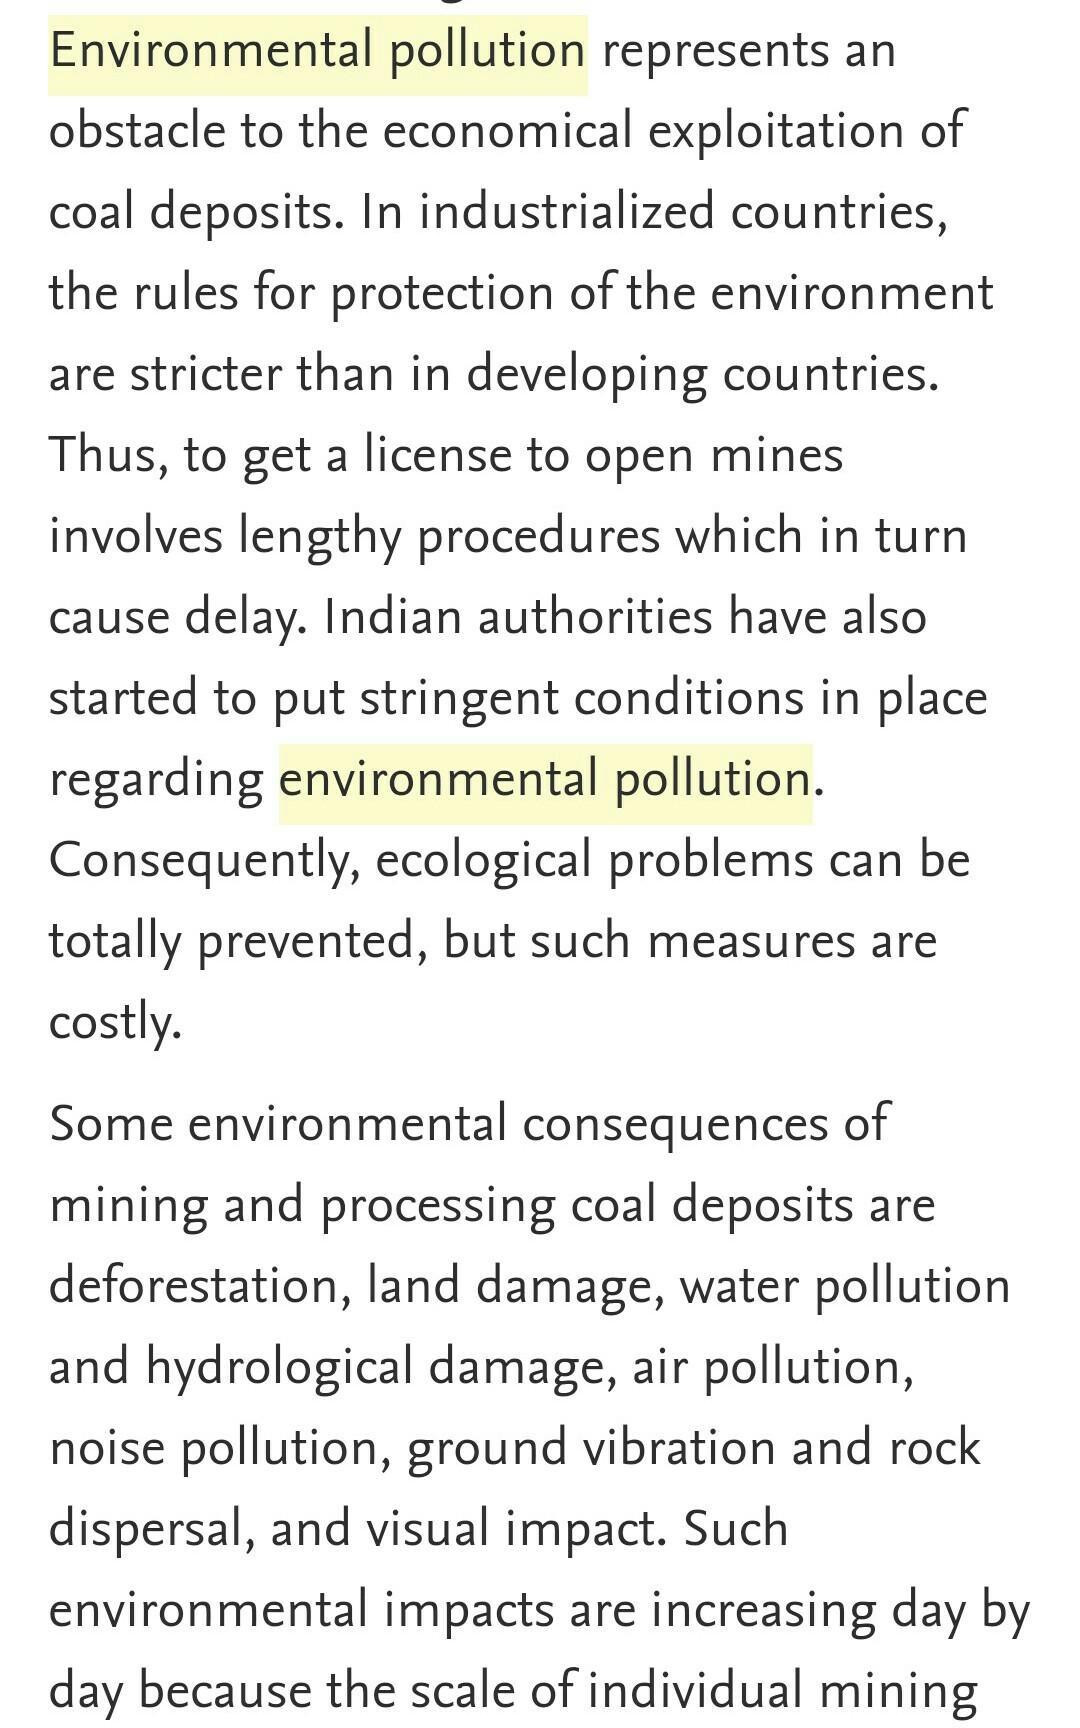 essay about environment pollution